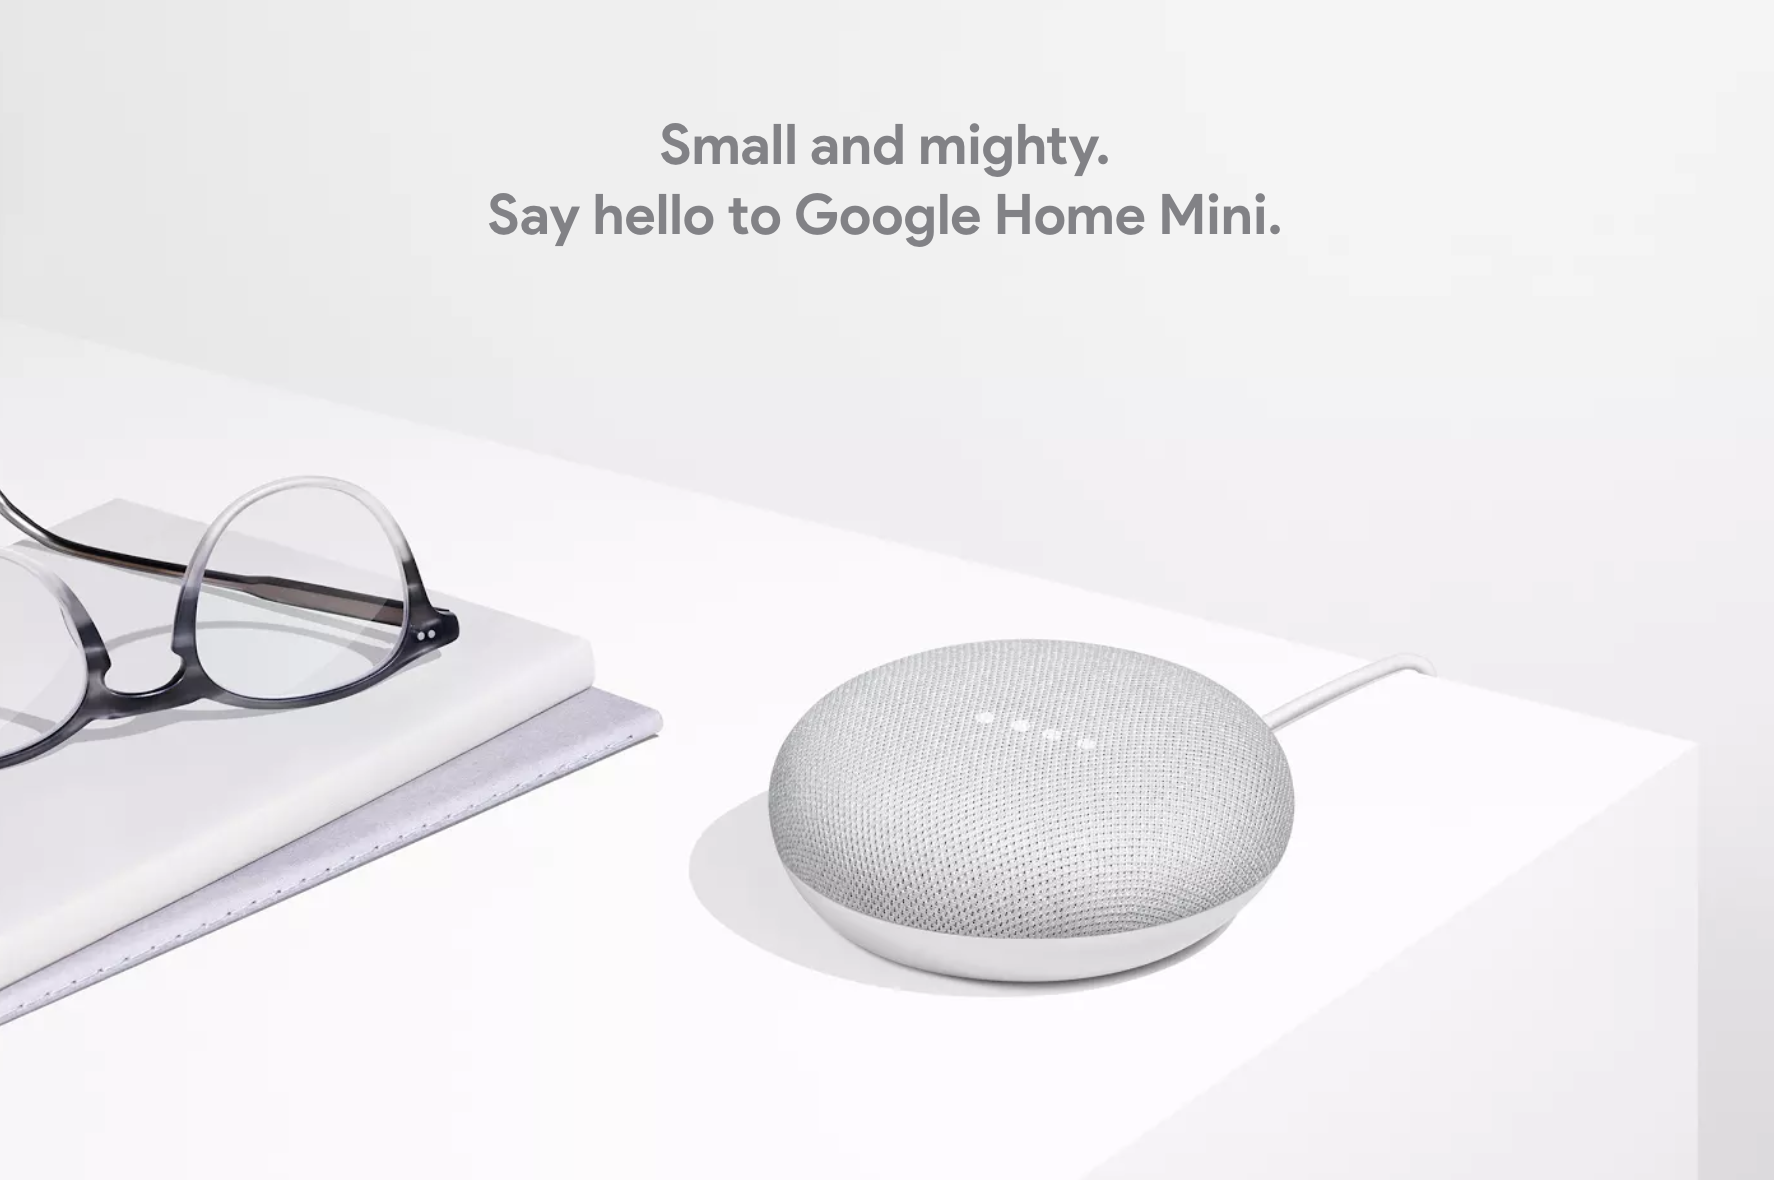 Pixel 2 owners are now receiving free Google Home Mini discount codes